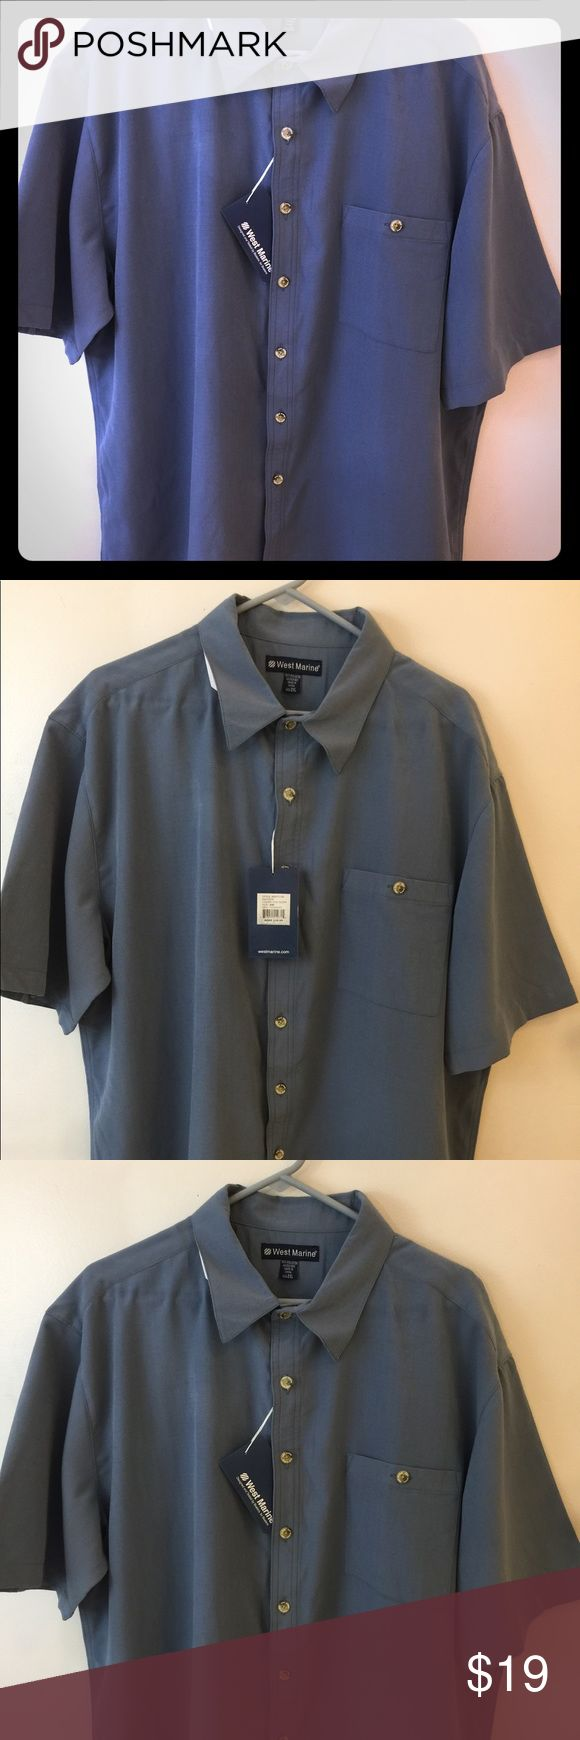 """West Marine 2XL Button Down Shirt NWT Mens NWT West Marine 2XL Button Down Shirt Designed and tested by boaters, for boaters • limited edition design  • 100% microfiber polyester • UPF 50+ sun protection  • Button thru pockets • Square bottom hem • Side slit's • Wear shirt tucked in or out  • value $29.99 Measurements laying flat: 28"""" chest  30 1/2"""" length along button seam West Marine Shirts Casual Button Down Shirts"""